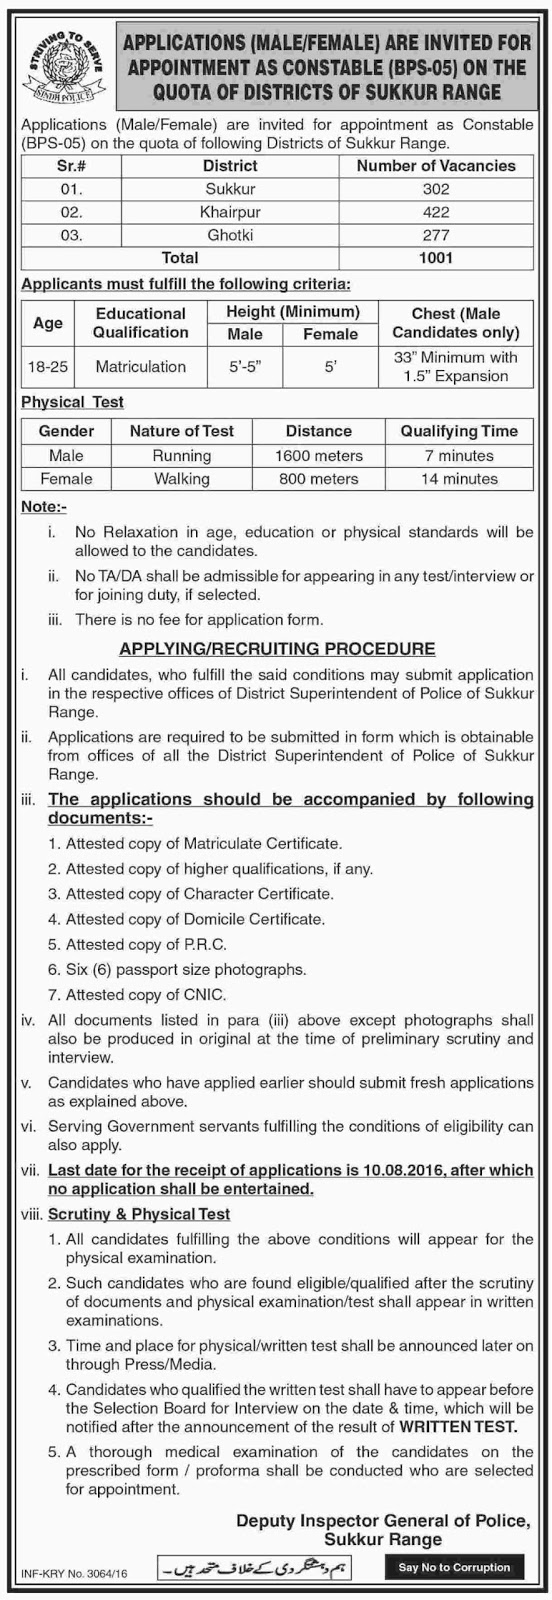 Police Constable Jobs in Pakistan in Sukkur, Khairpur & Ghotki